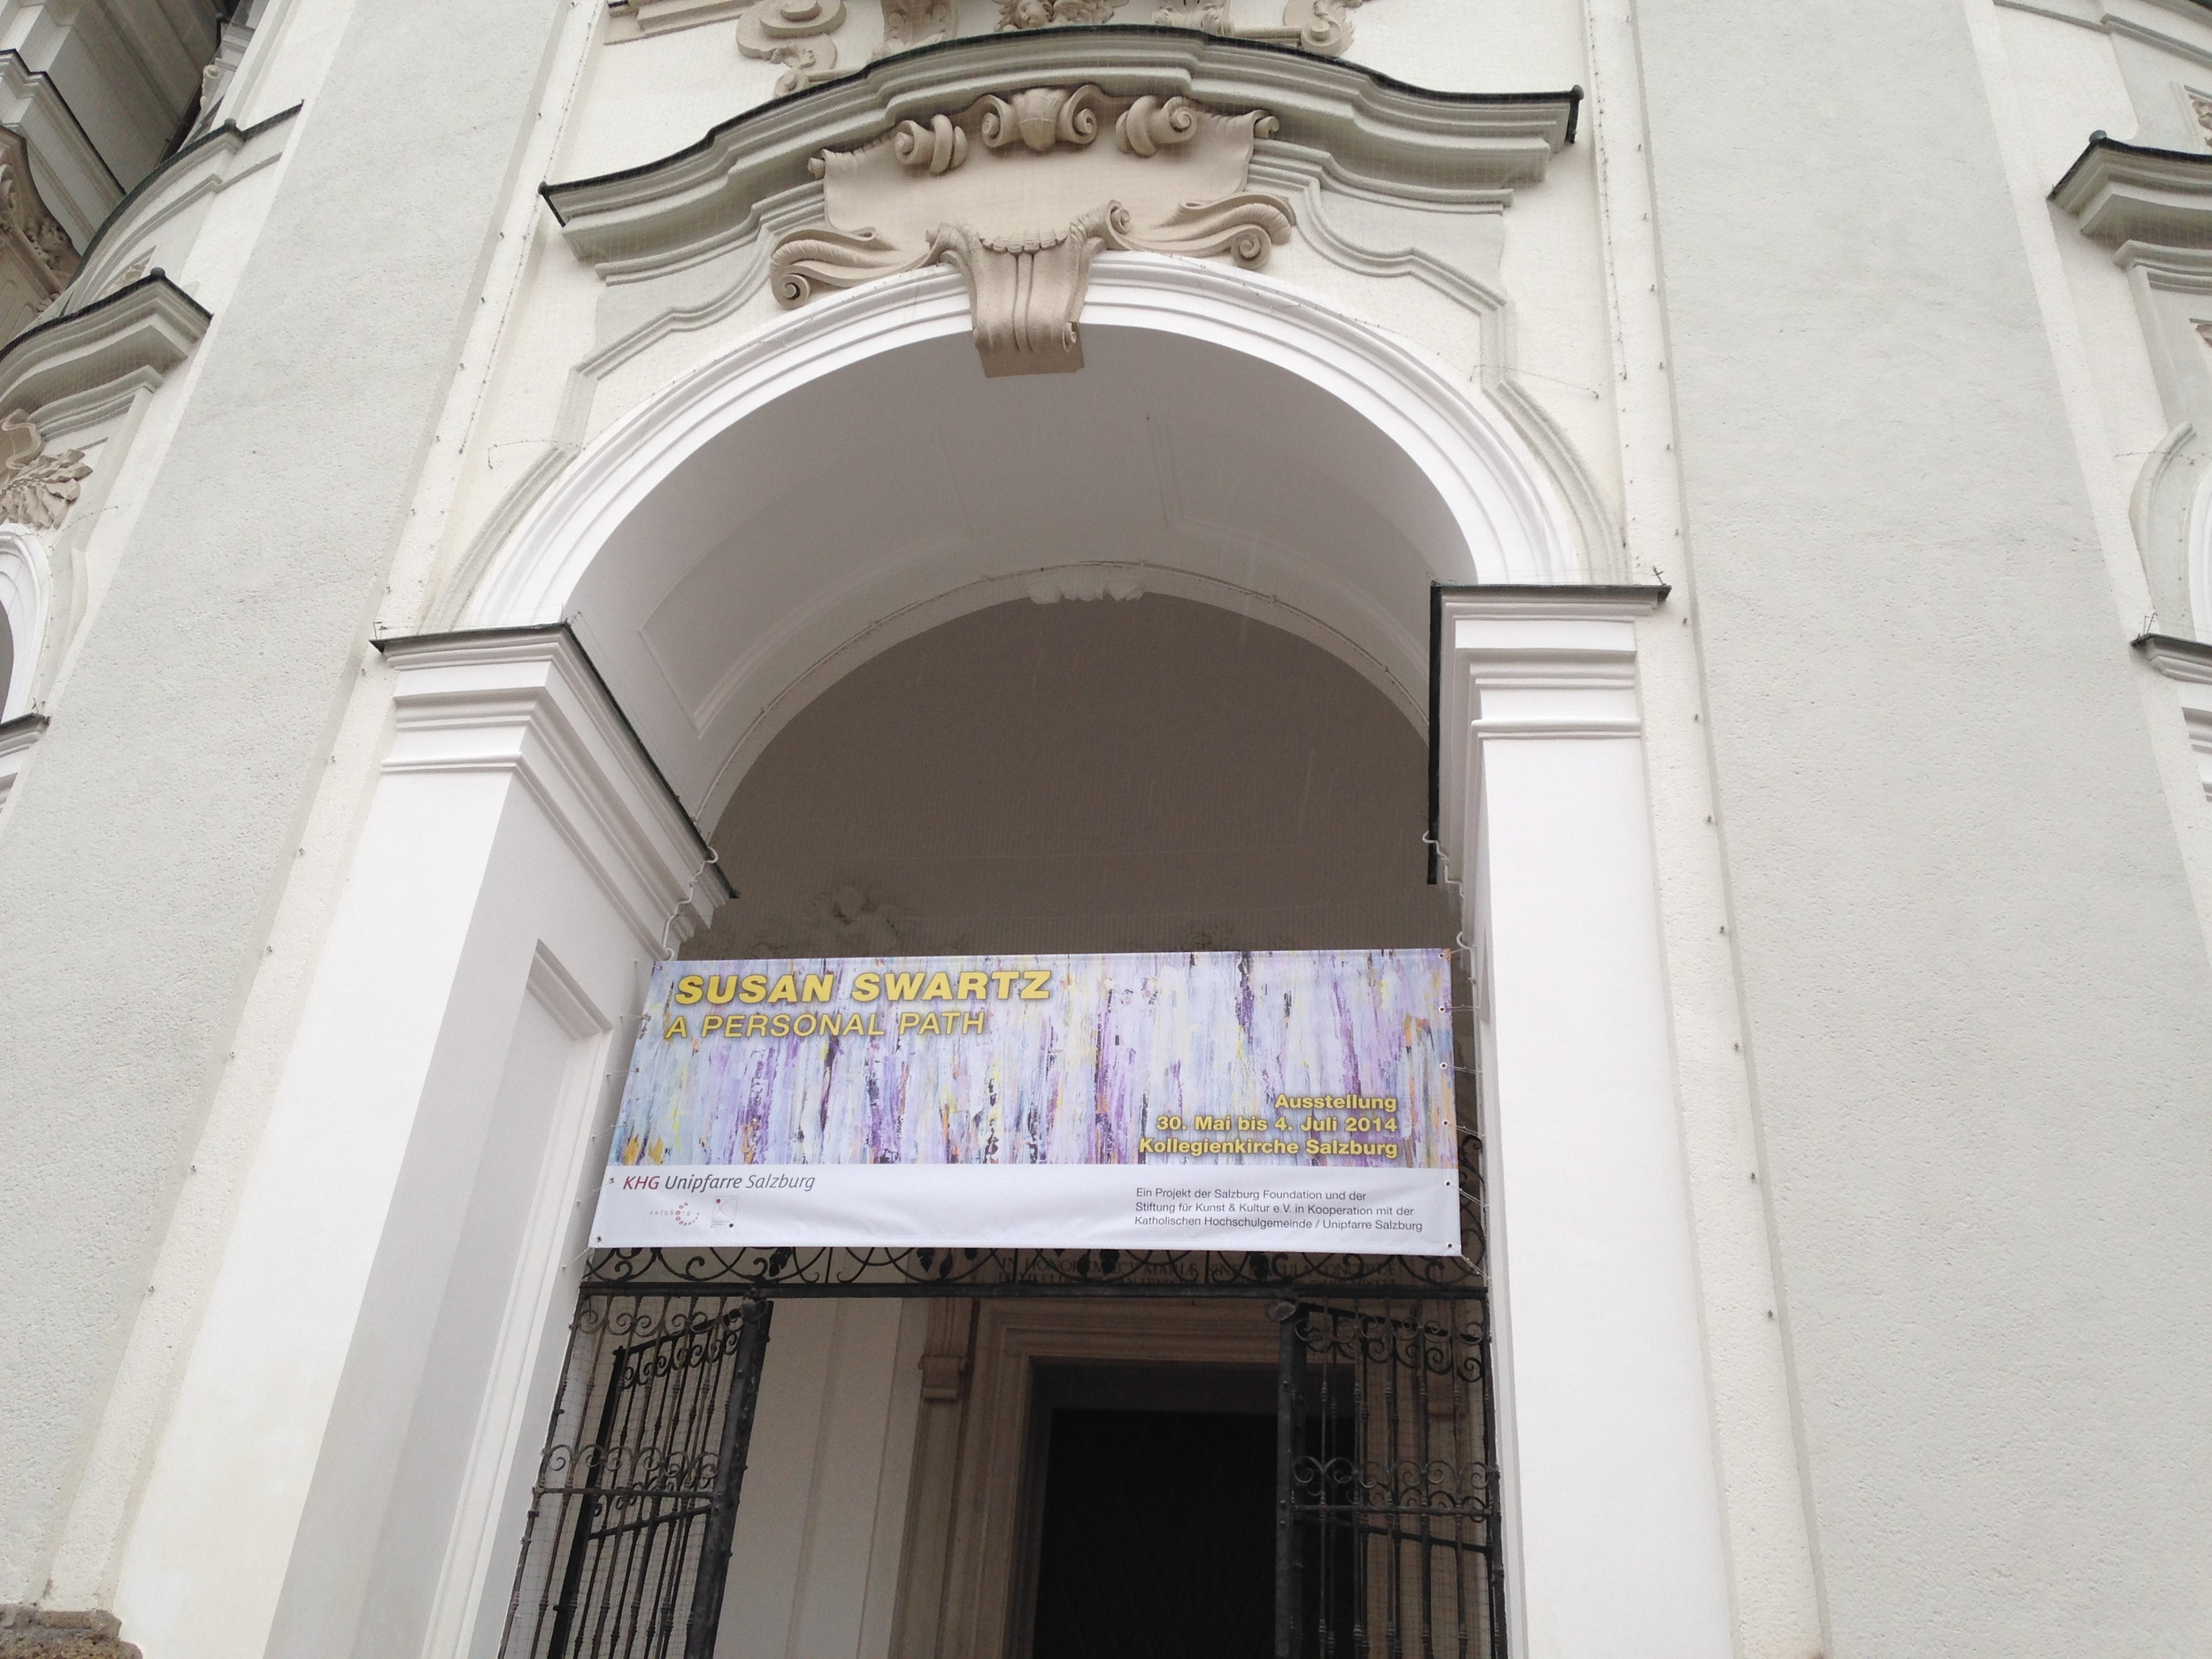 A banner hangs at the front entrance of the Kollegienkirche in Salzburg, drawing visitors into the exhibition within.